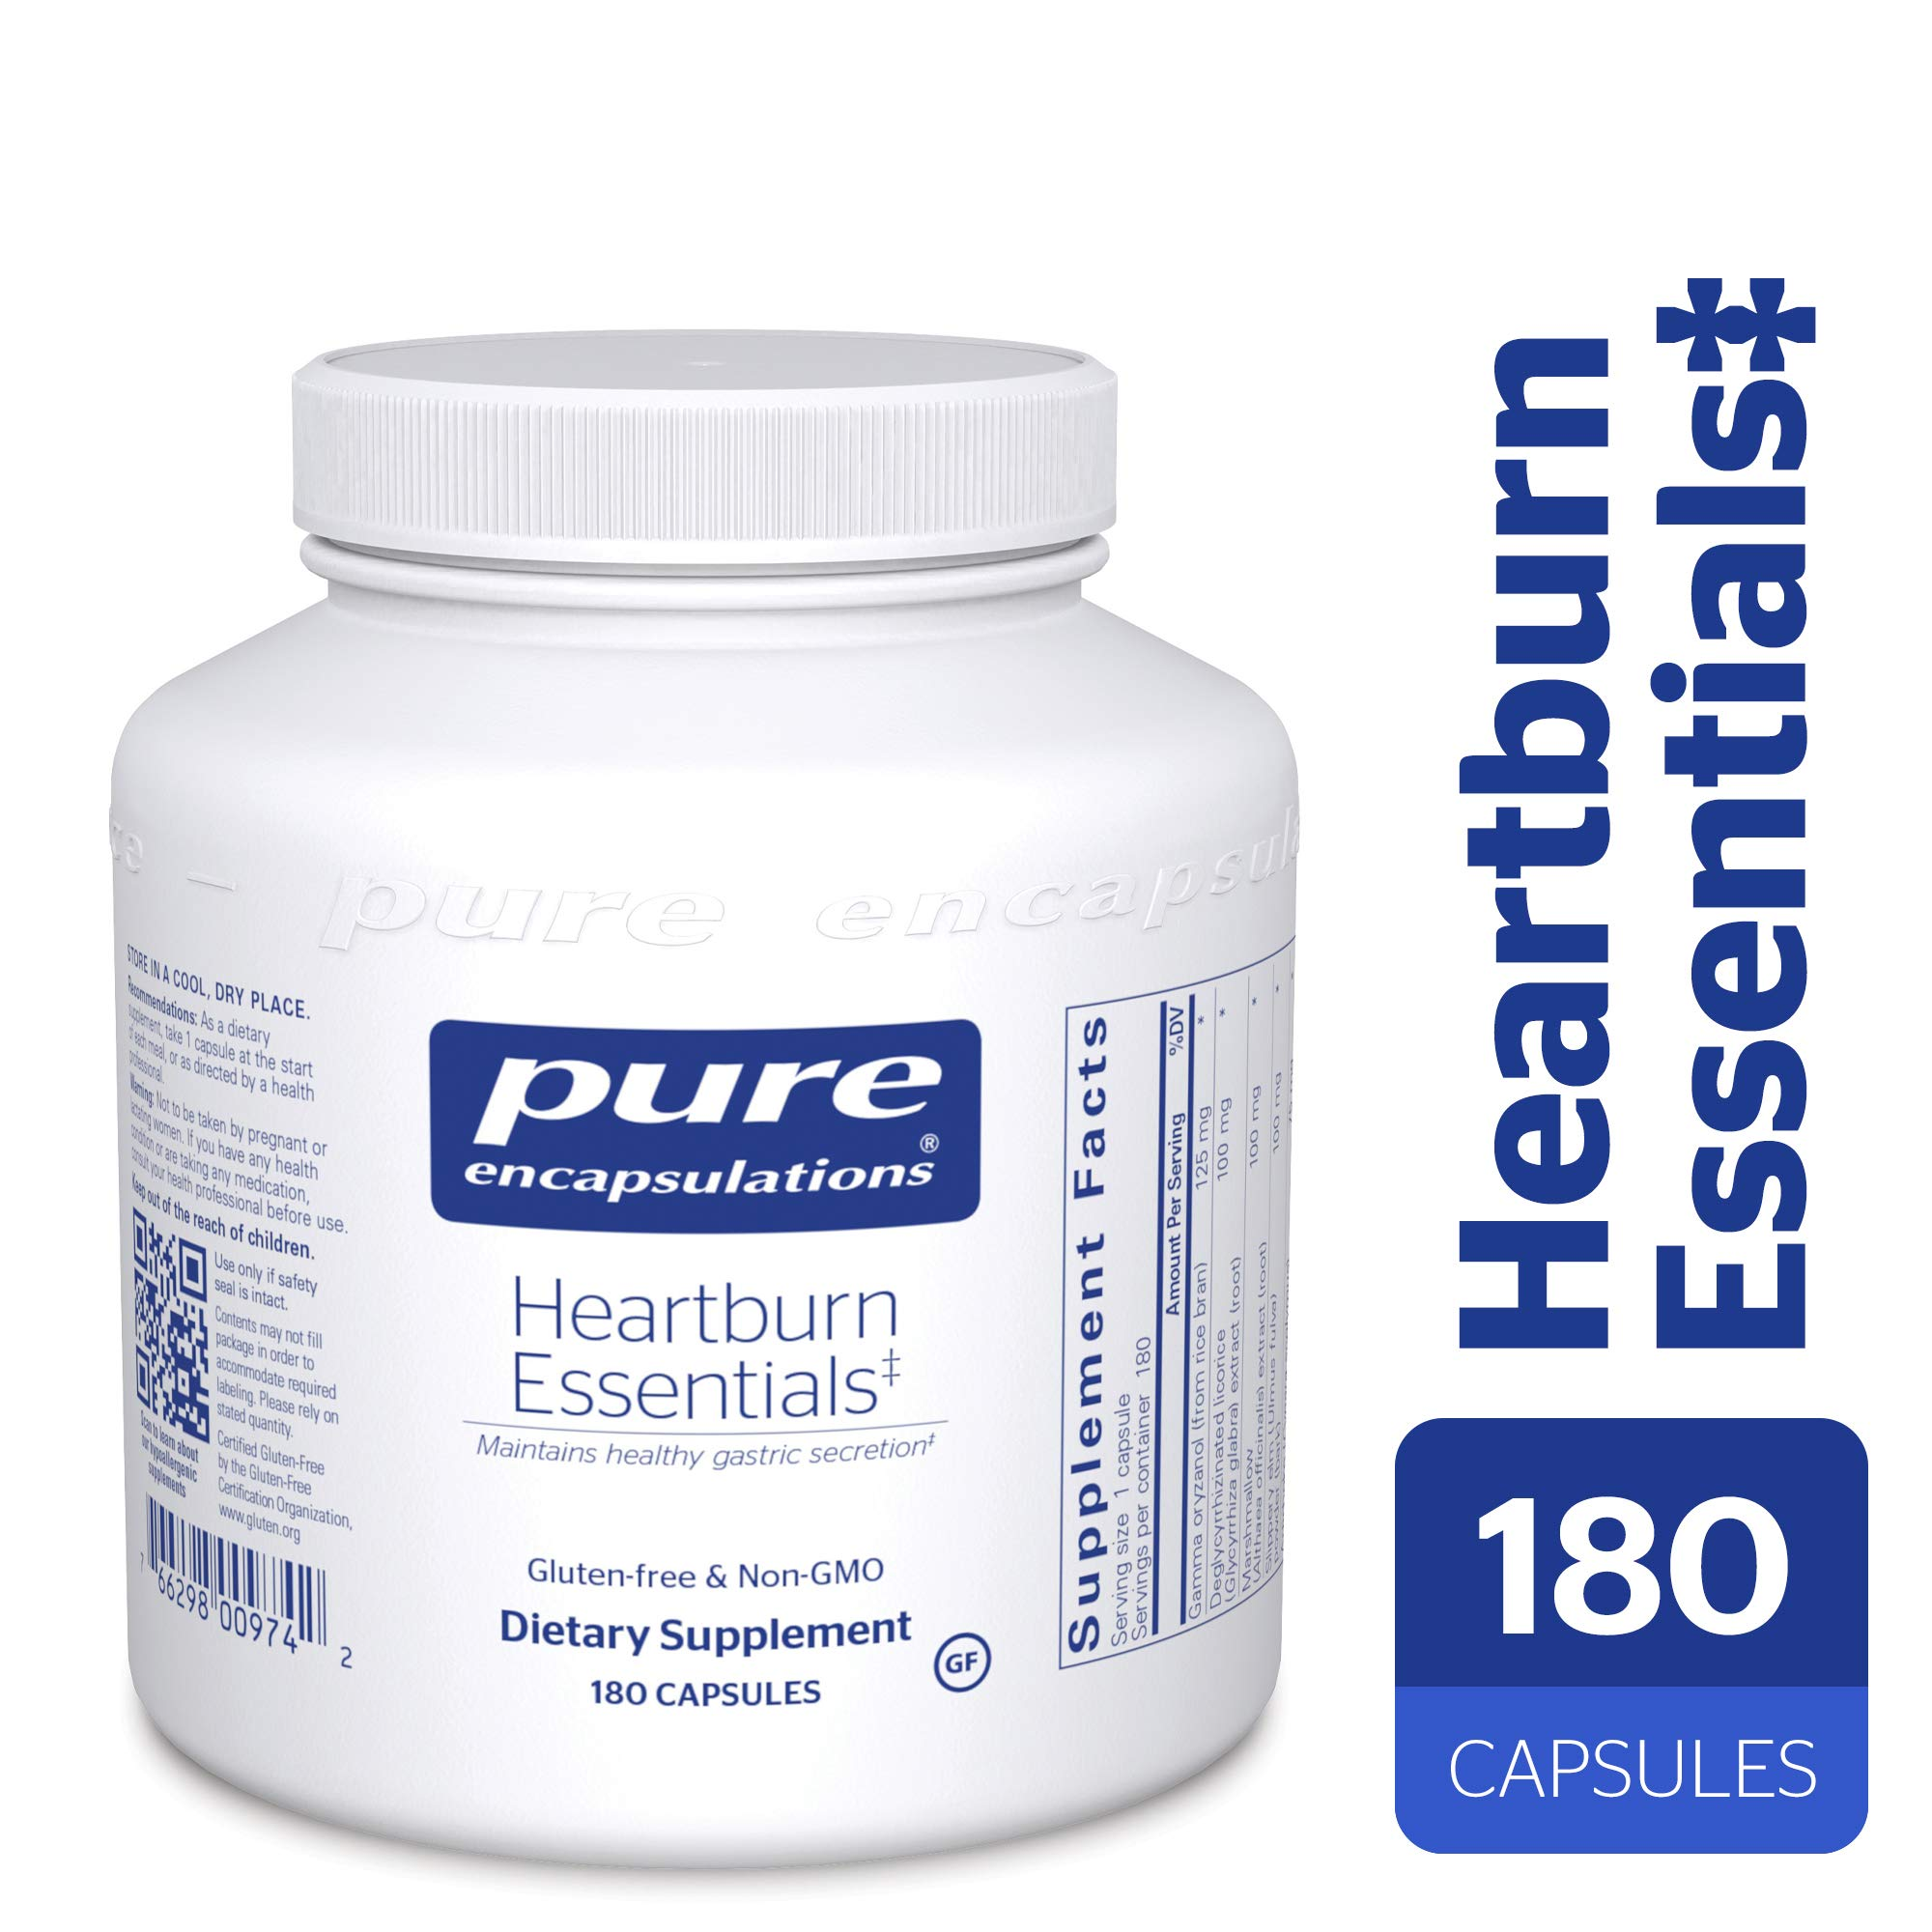 Pure Encapsulations - Heartburn Essentials 180c by Pure Encapsulations